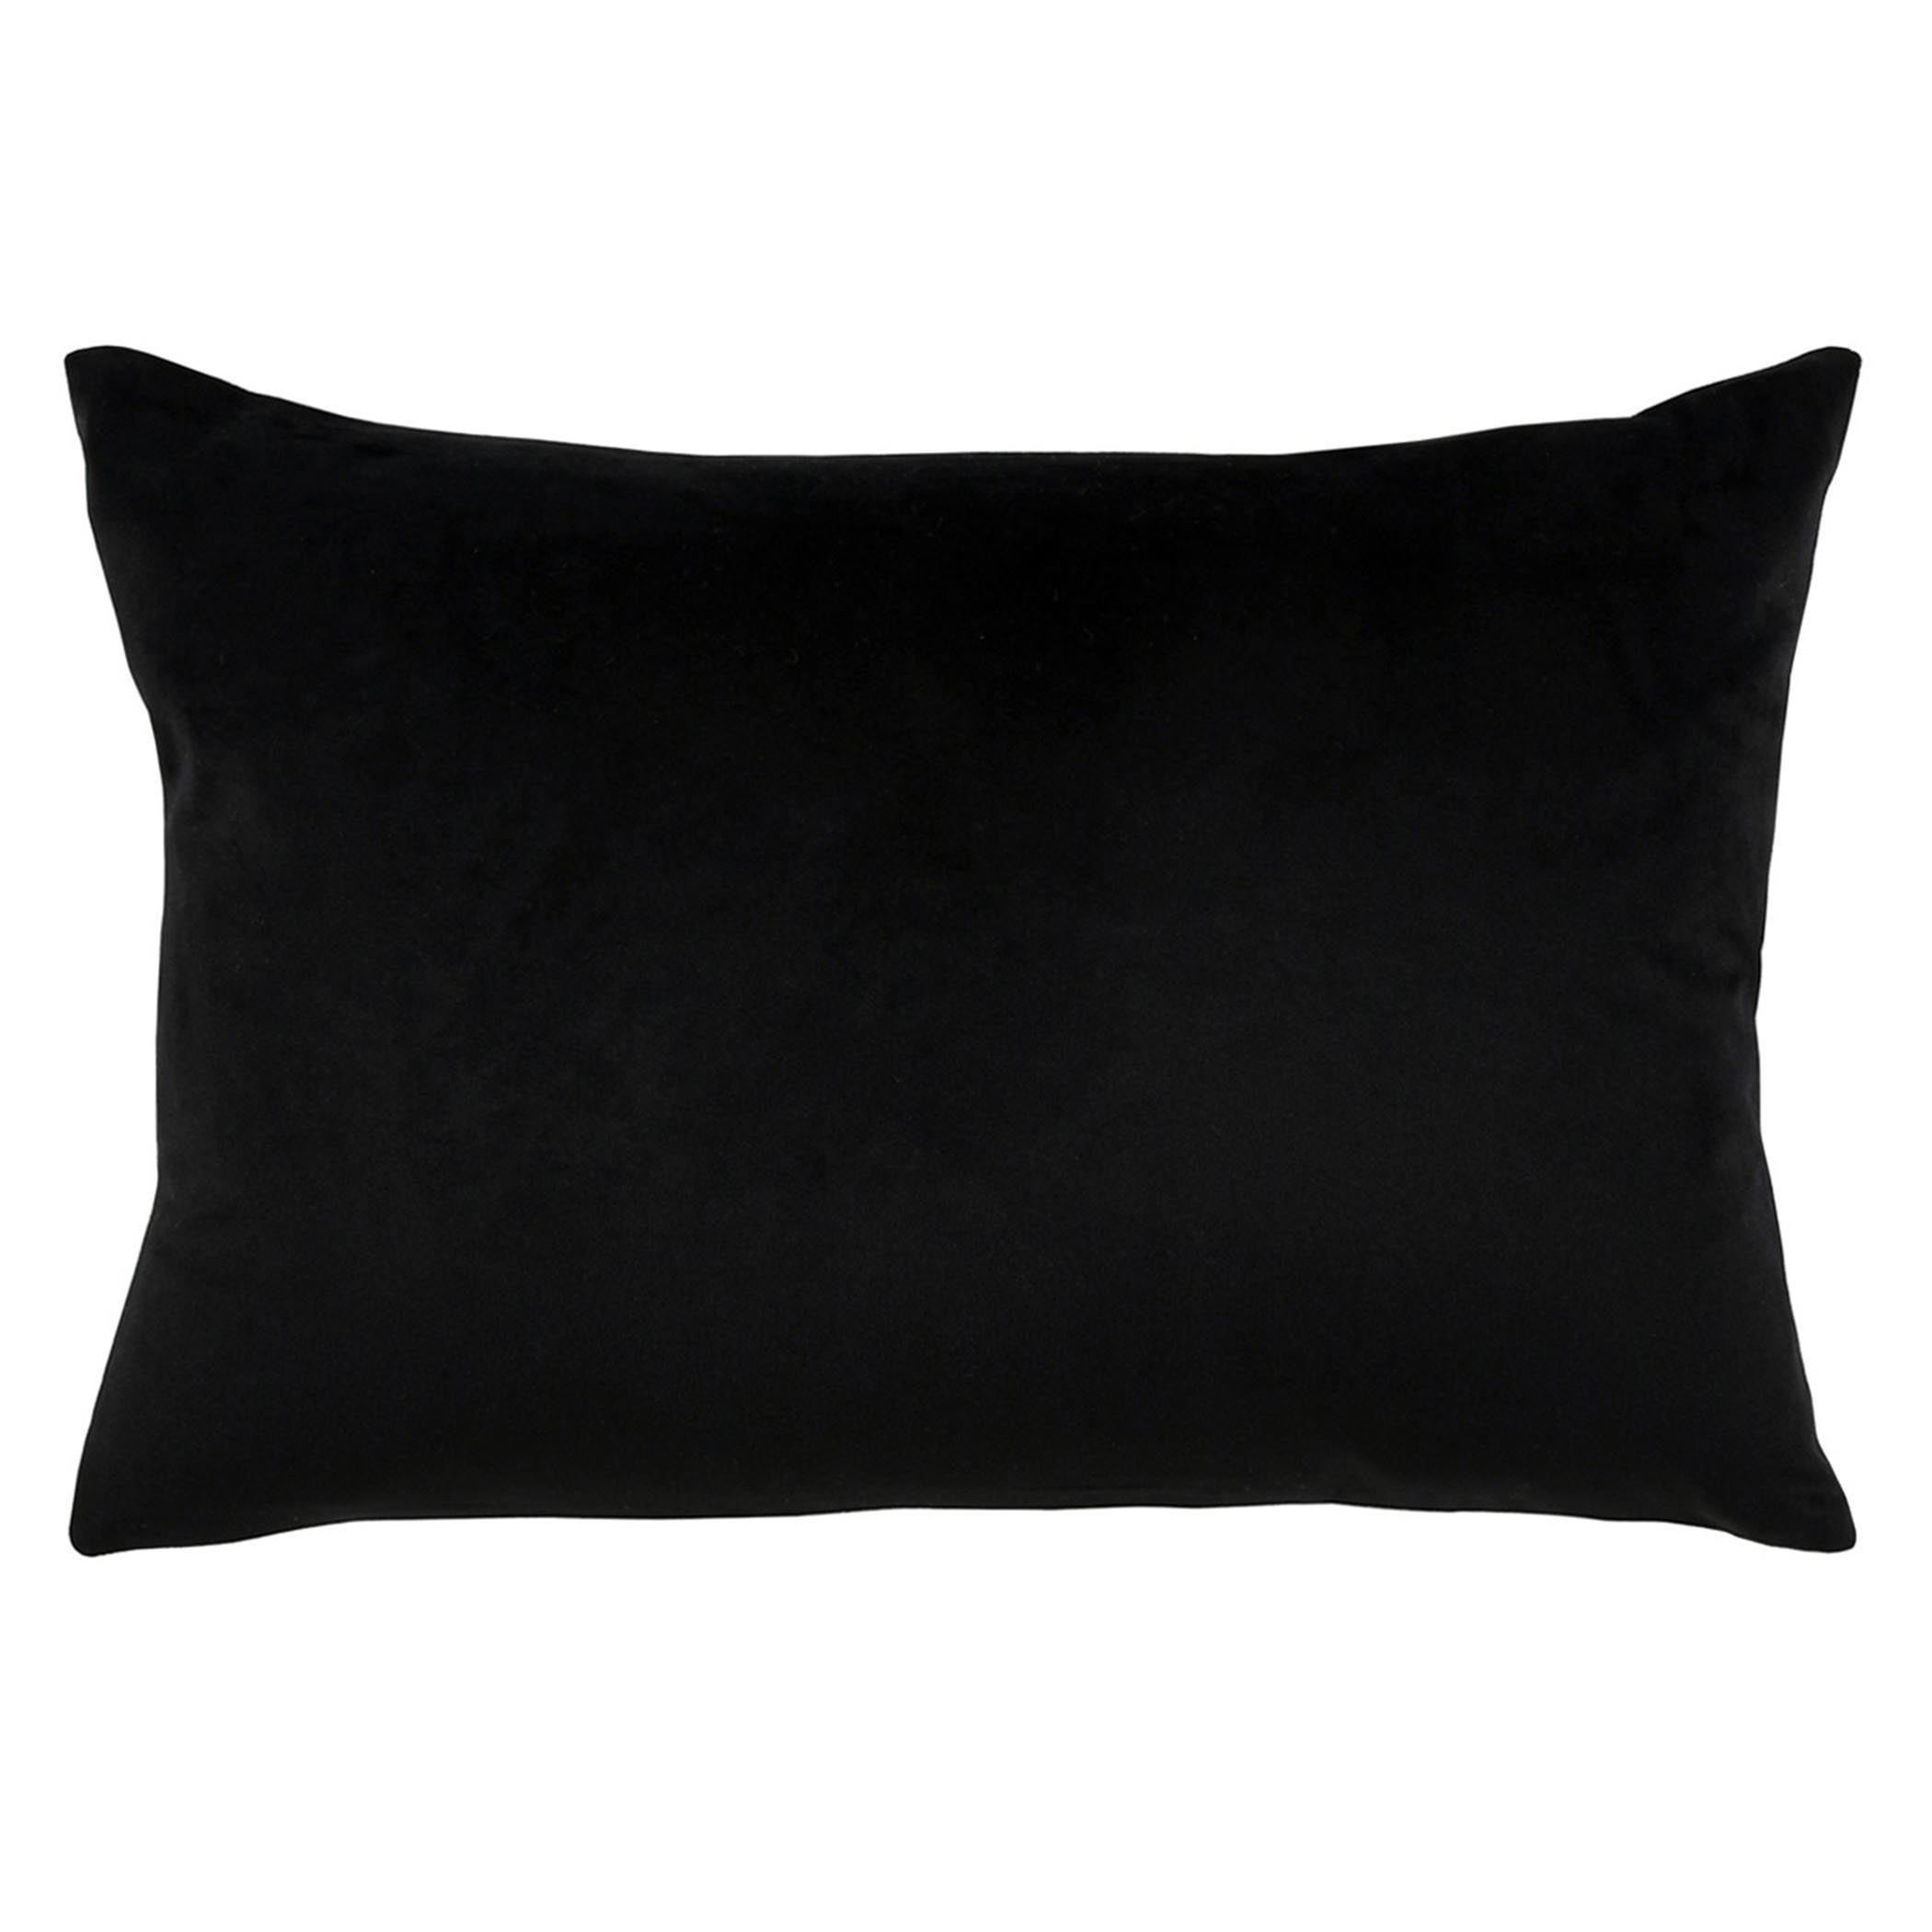 Caelynn Pillow Collection